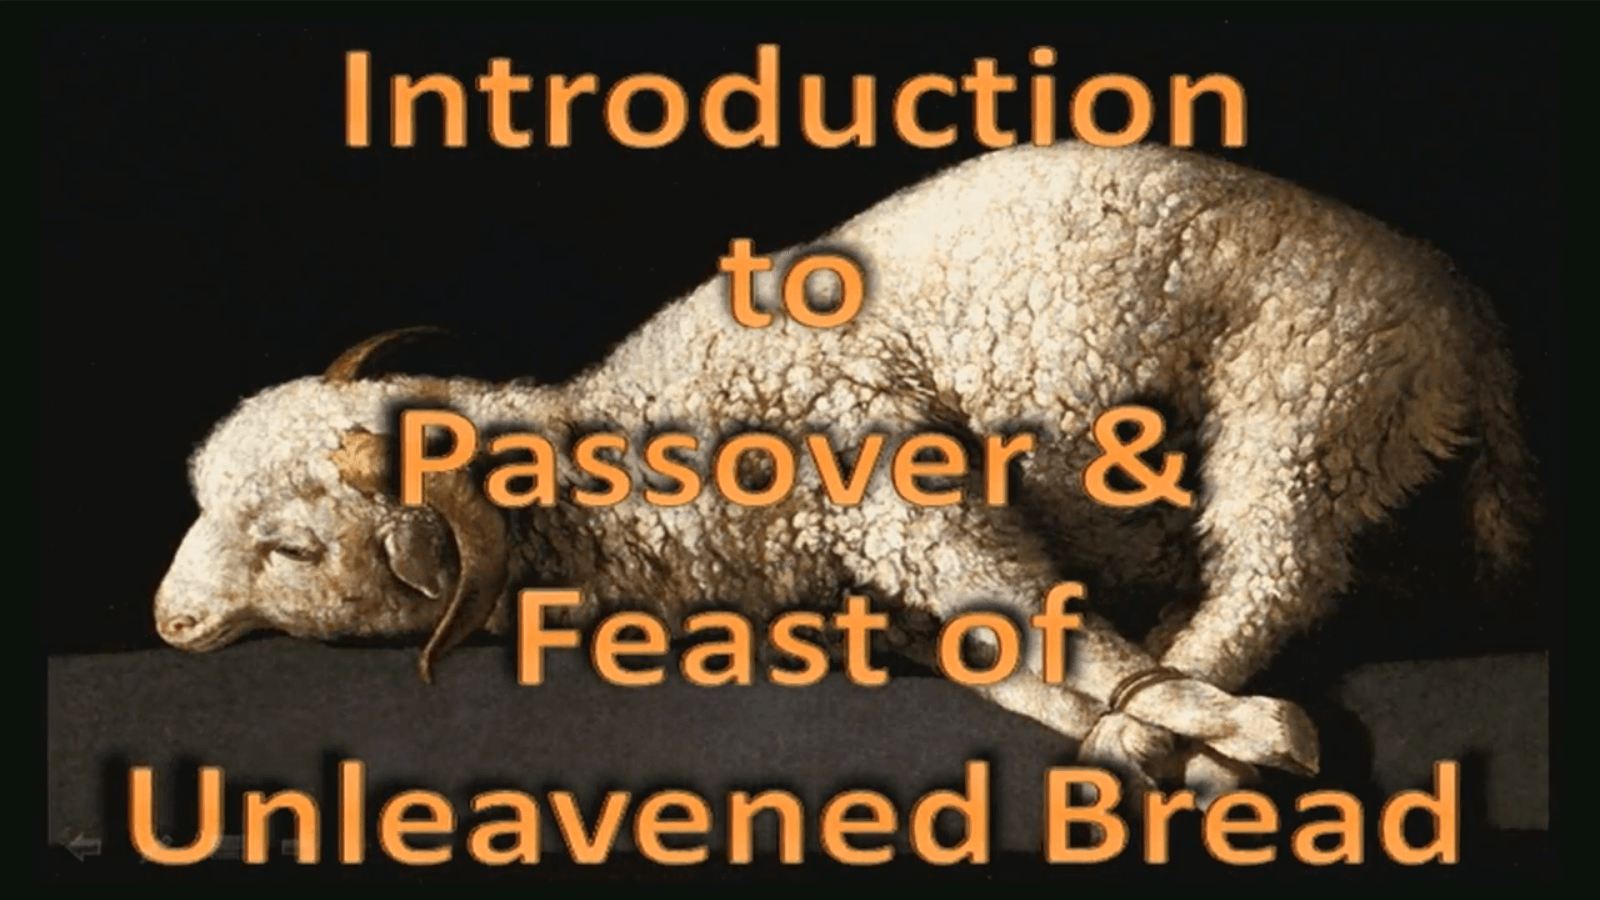 Introduction to Passover & Feast of Unleavened Bread